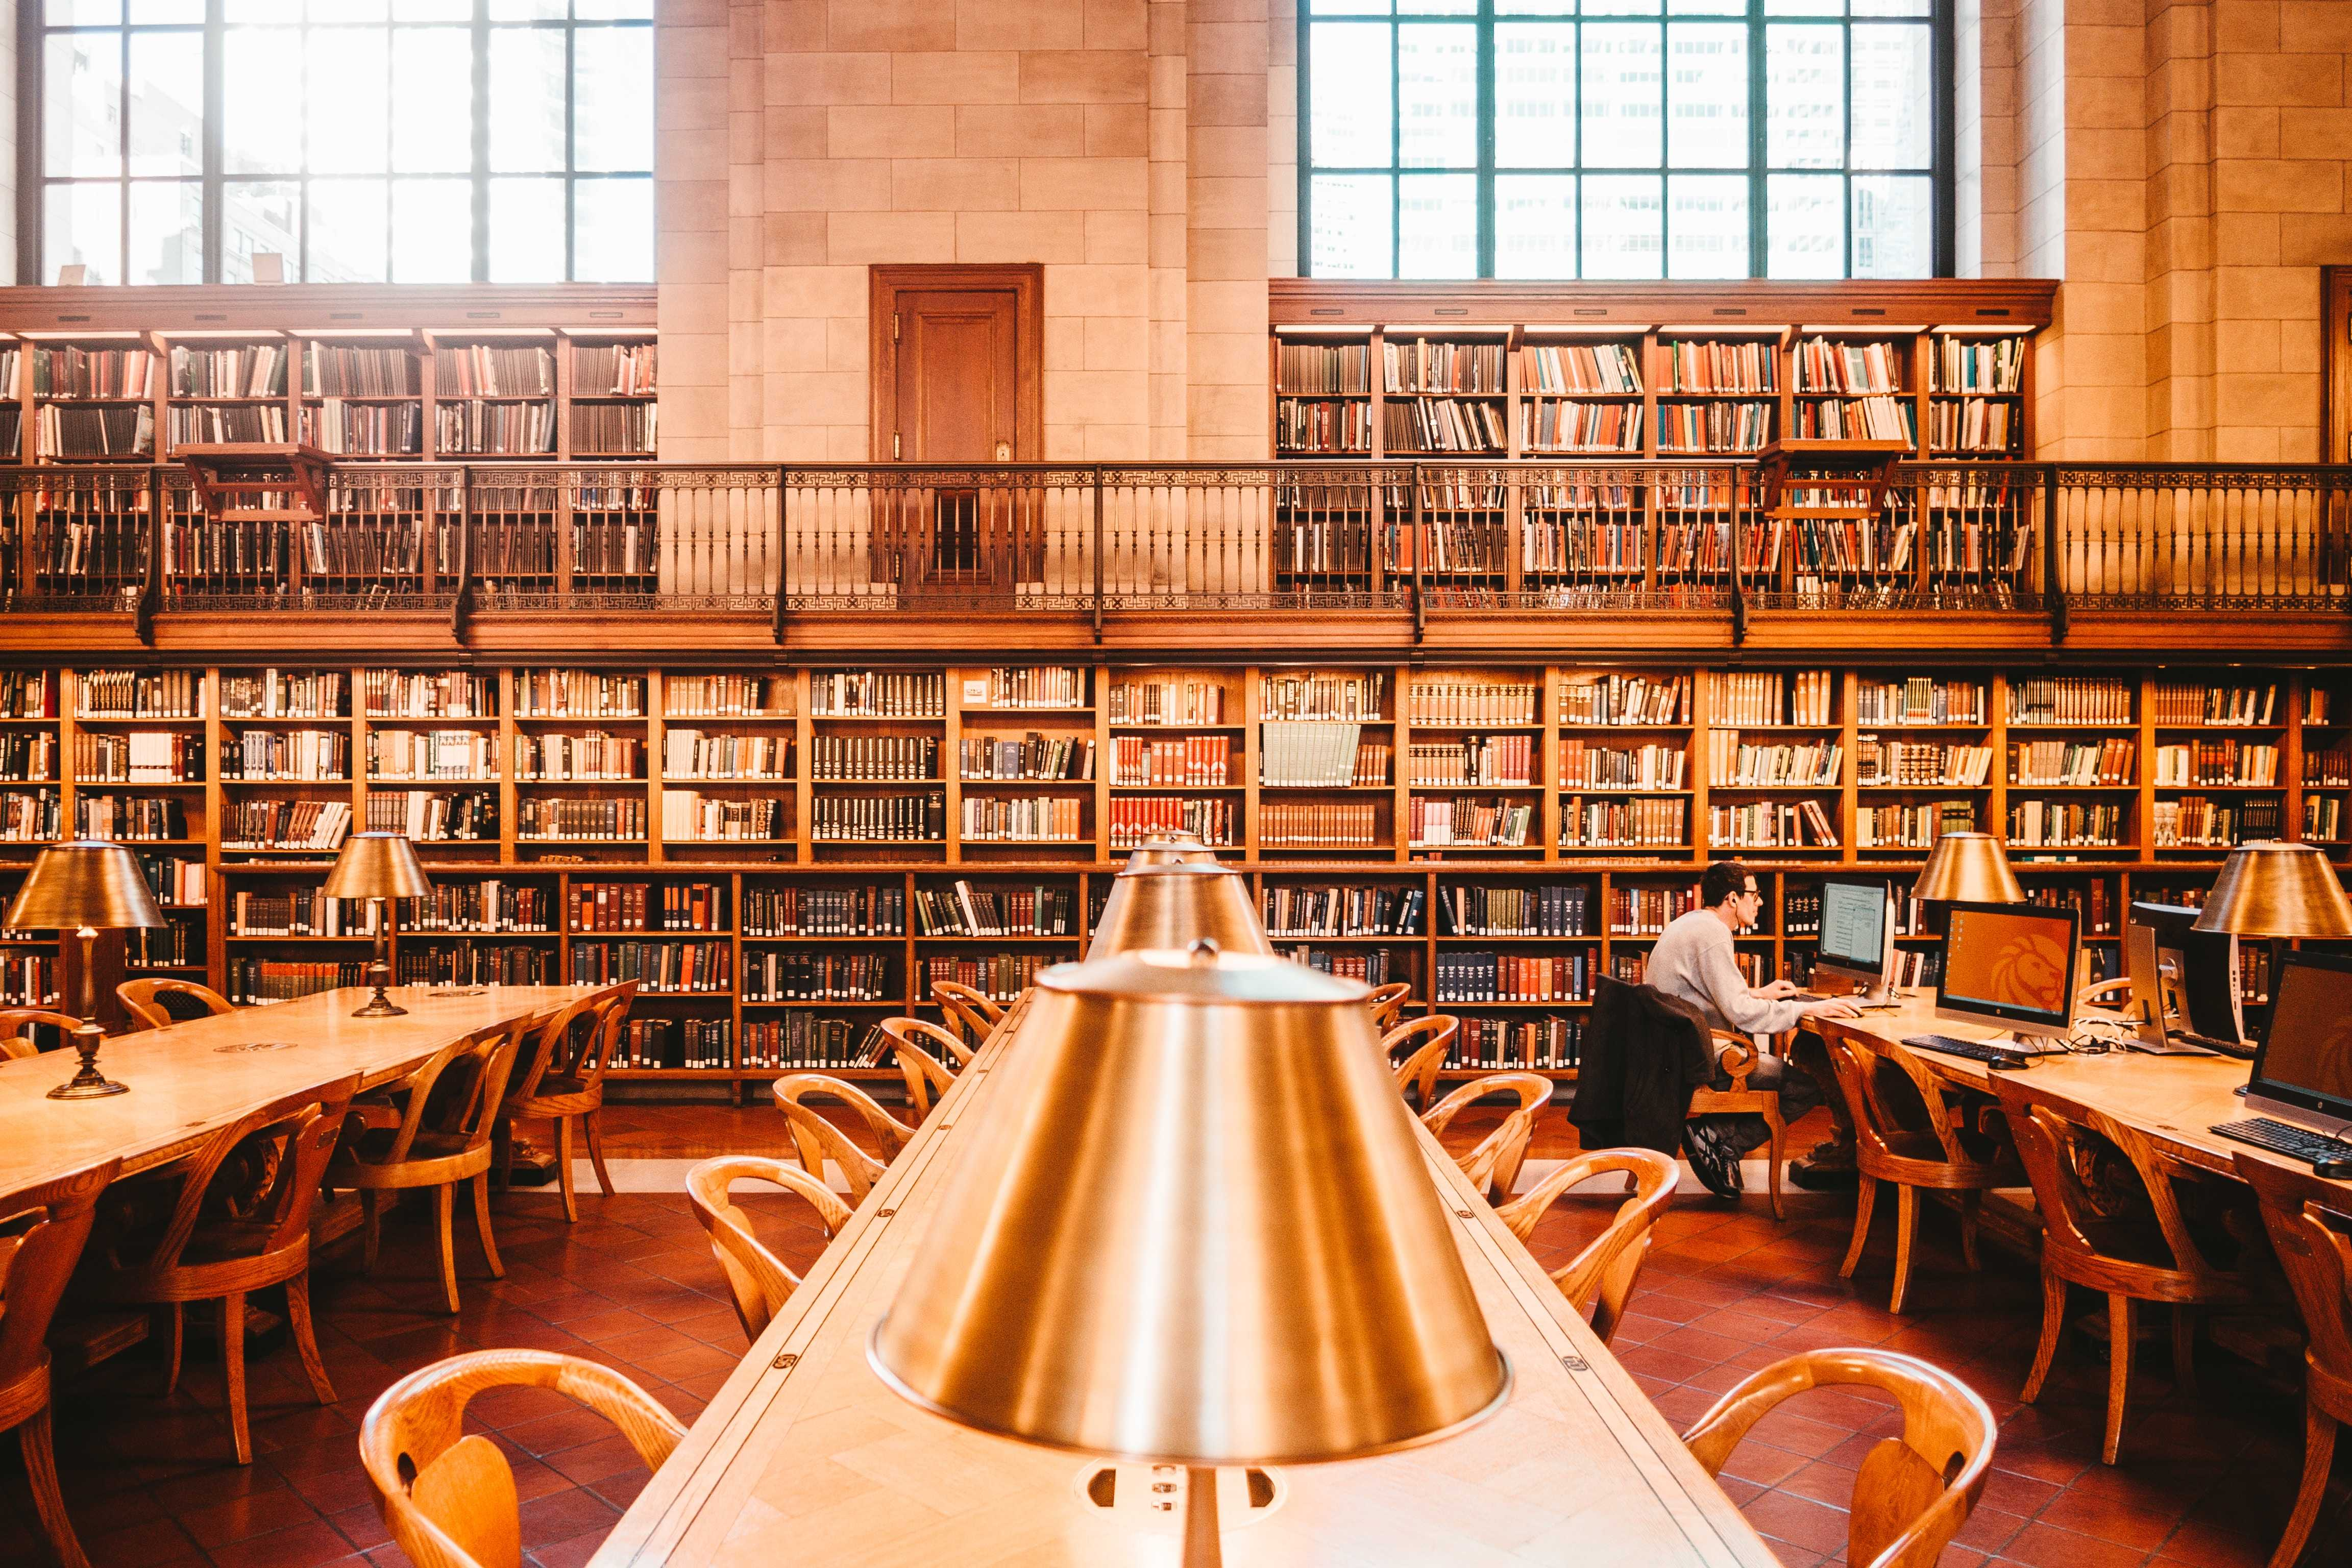 Man sitting in library